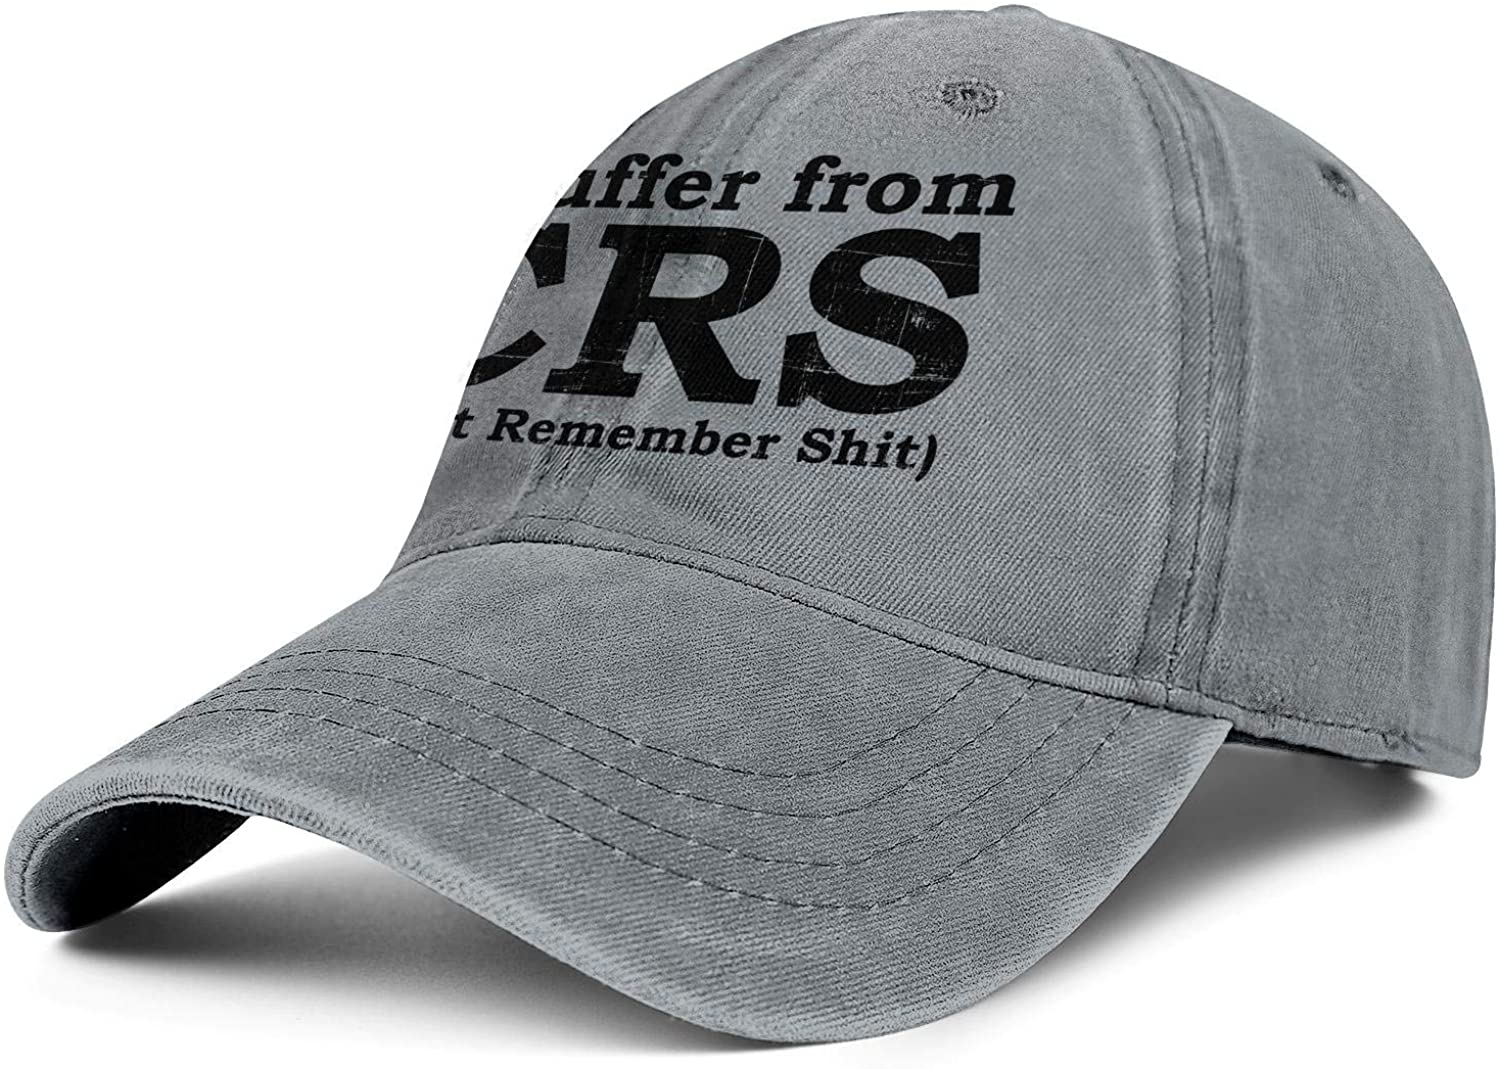 I Suffer from CRS - Can't Remember Shit Unisex Vintage Washed All Cotton Trucker Cap Adjustable Fits Snapback hat Sport Cap